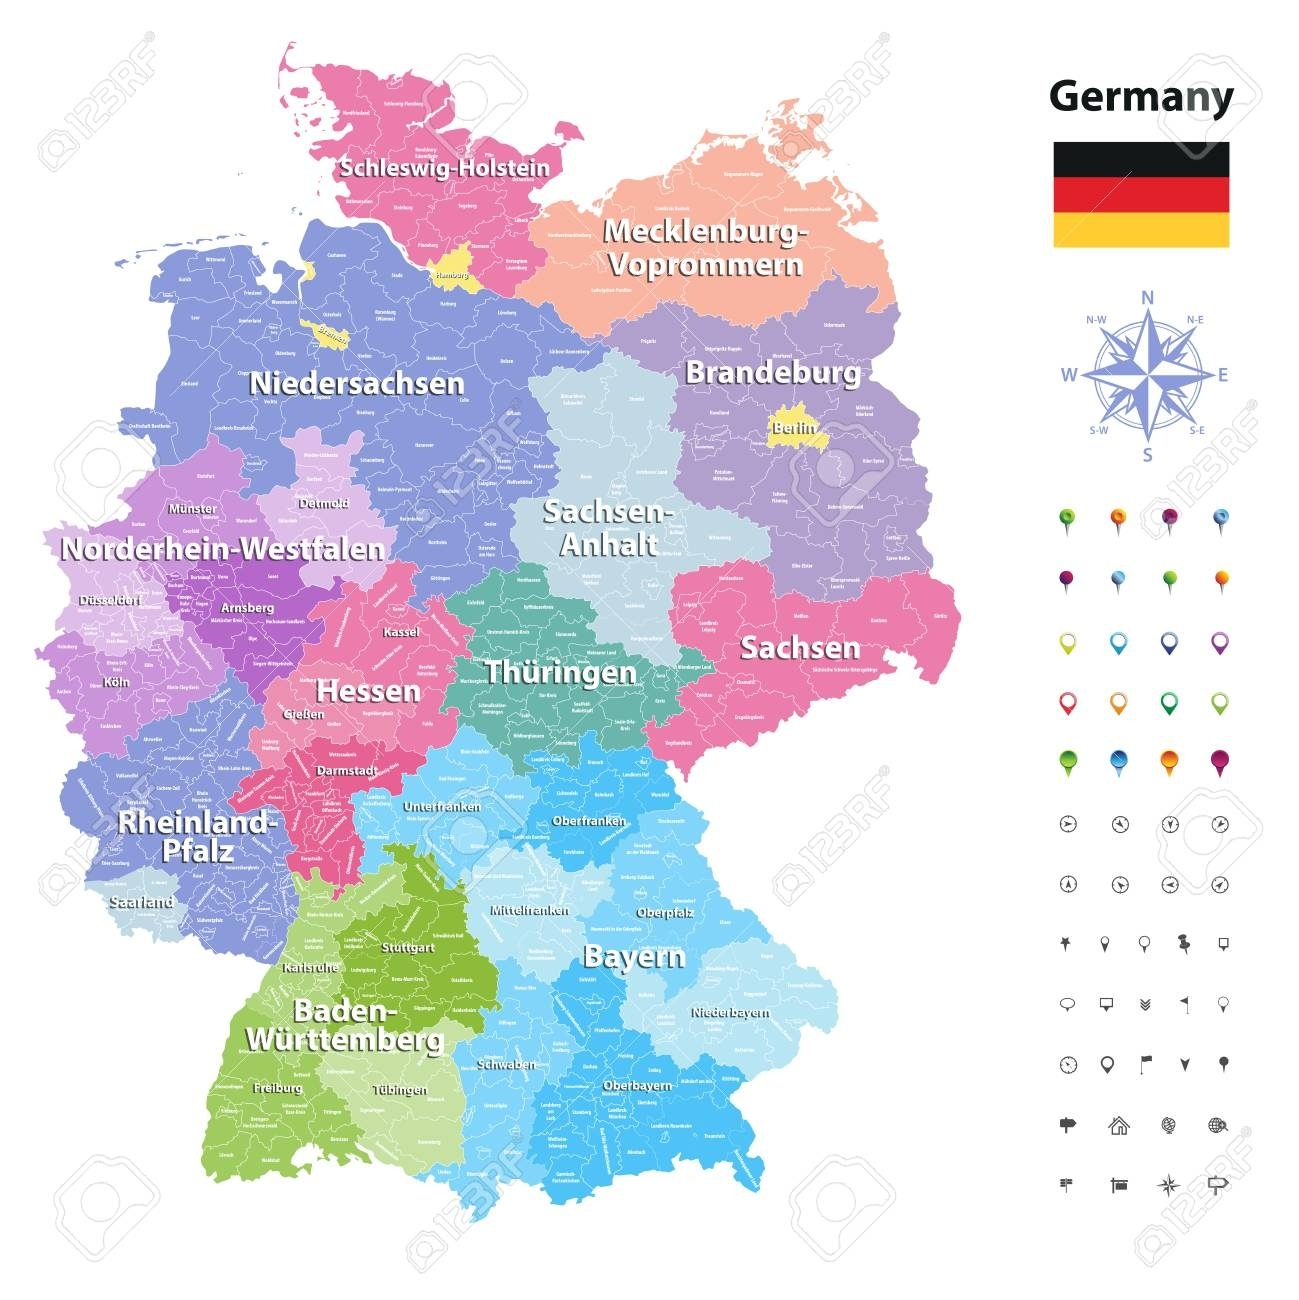 Germany Vector Map (Coloredstates And Administrative Districts).. for Germany Districts Map